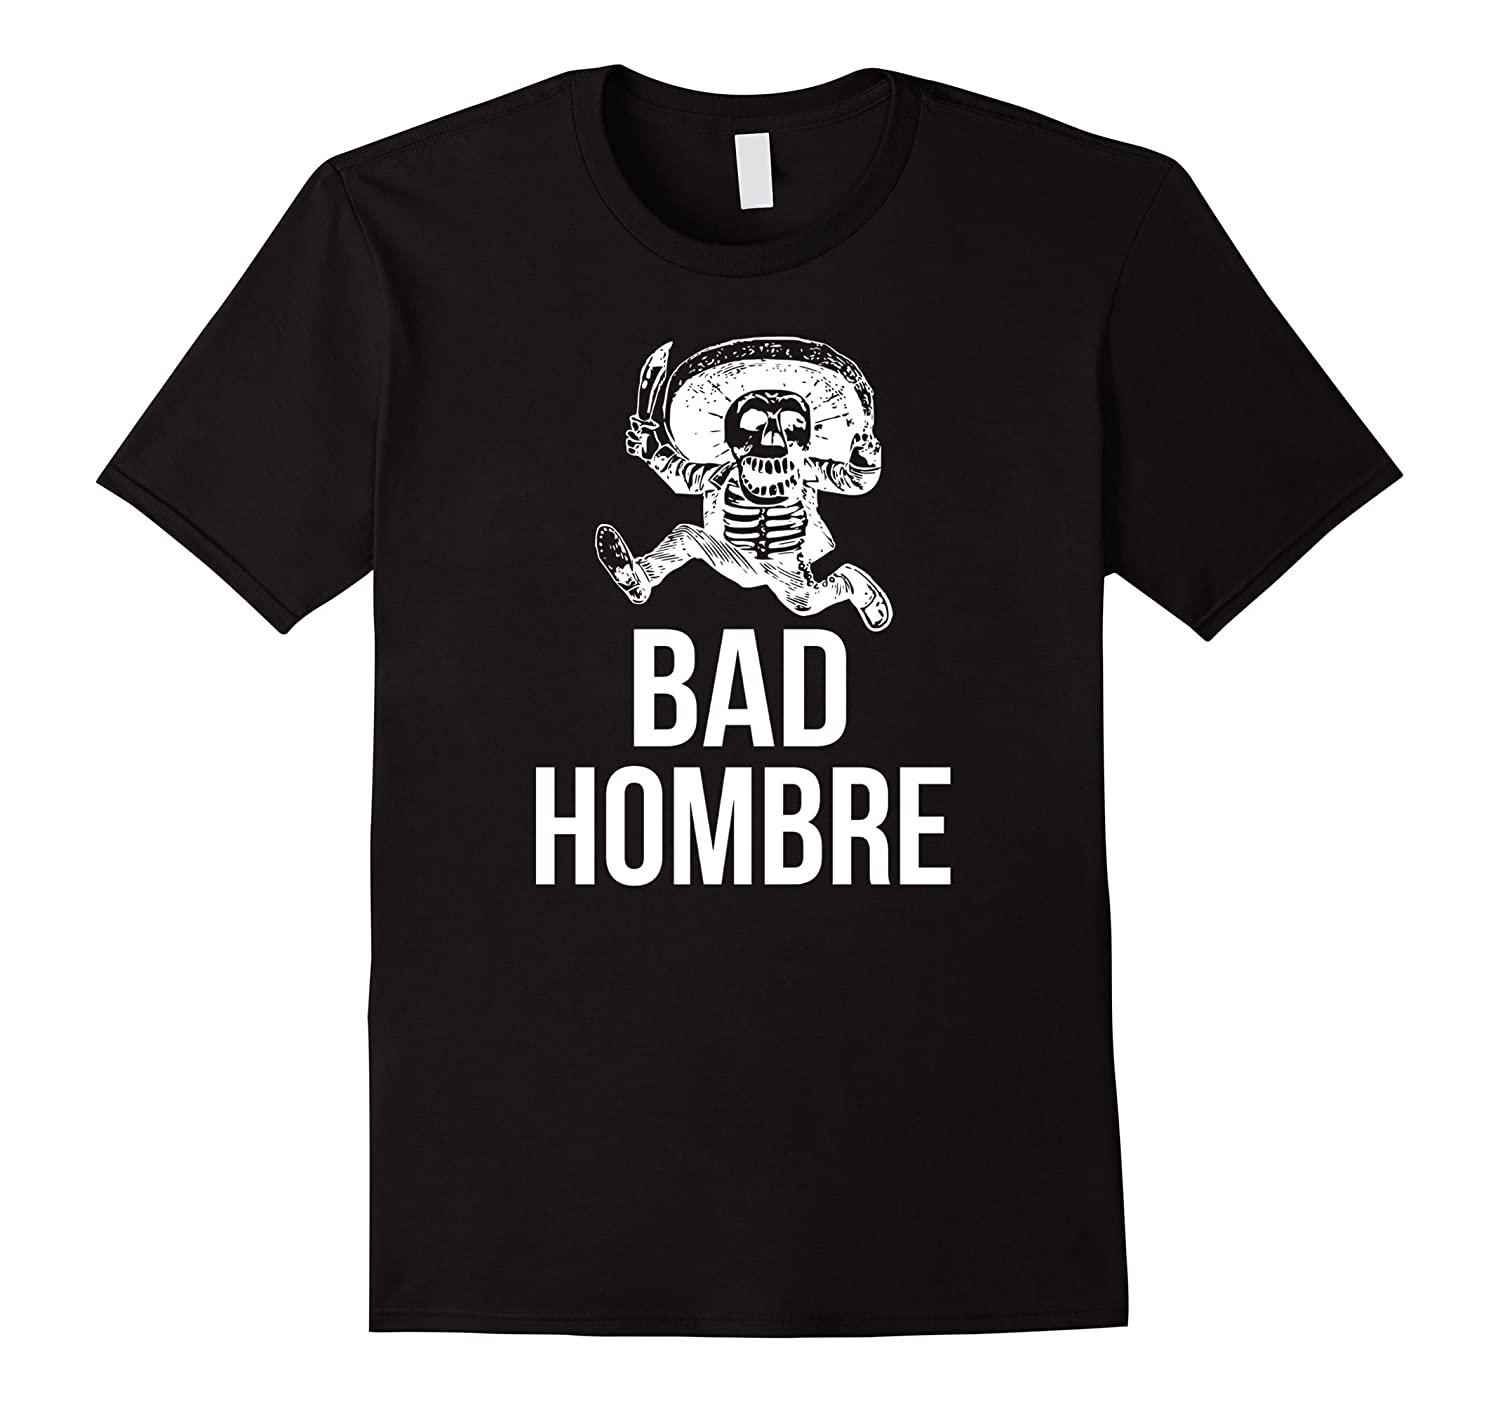 Bad Hombre to Nasty Women Trump Ombre Debate T-Shirt-BN